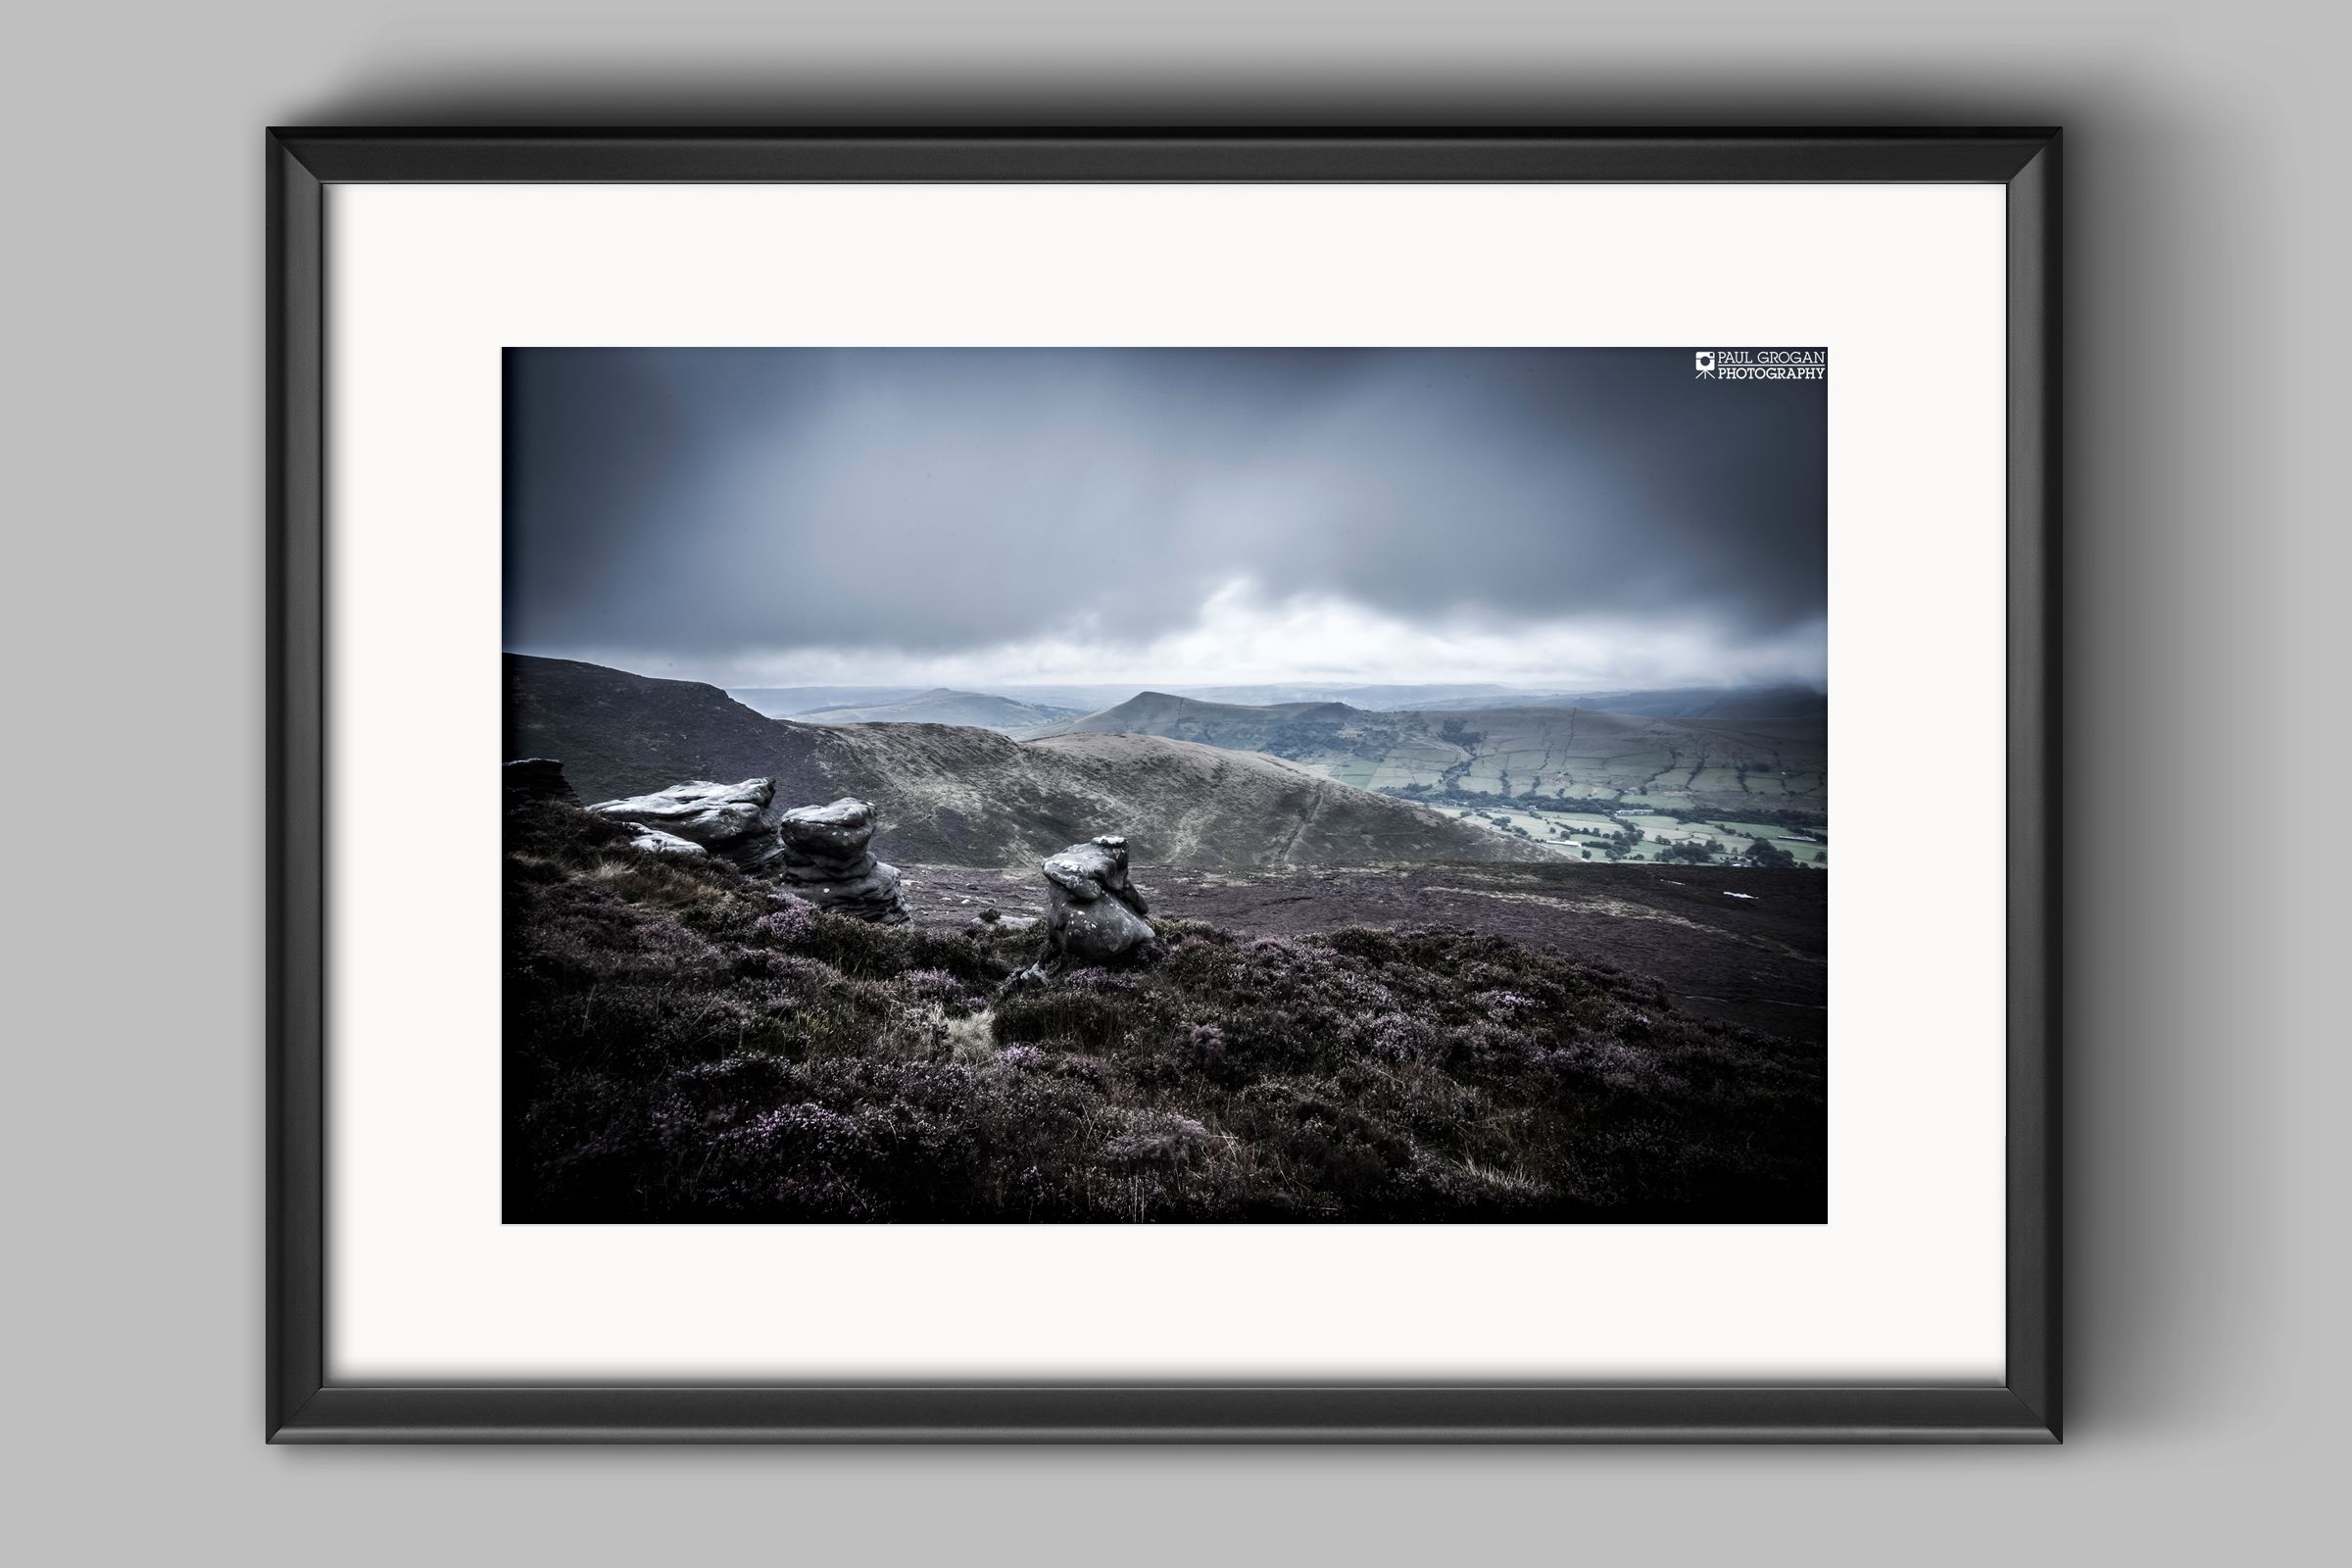 How your landscape photos might look when framed